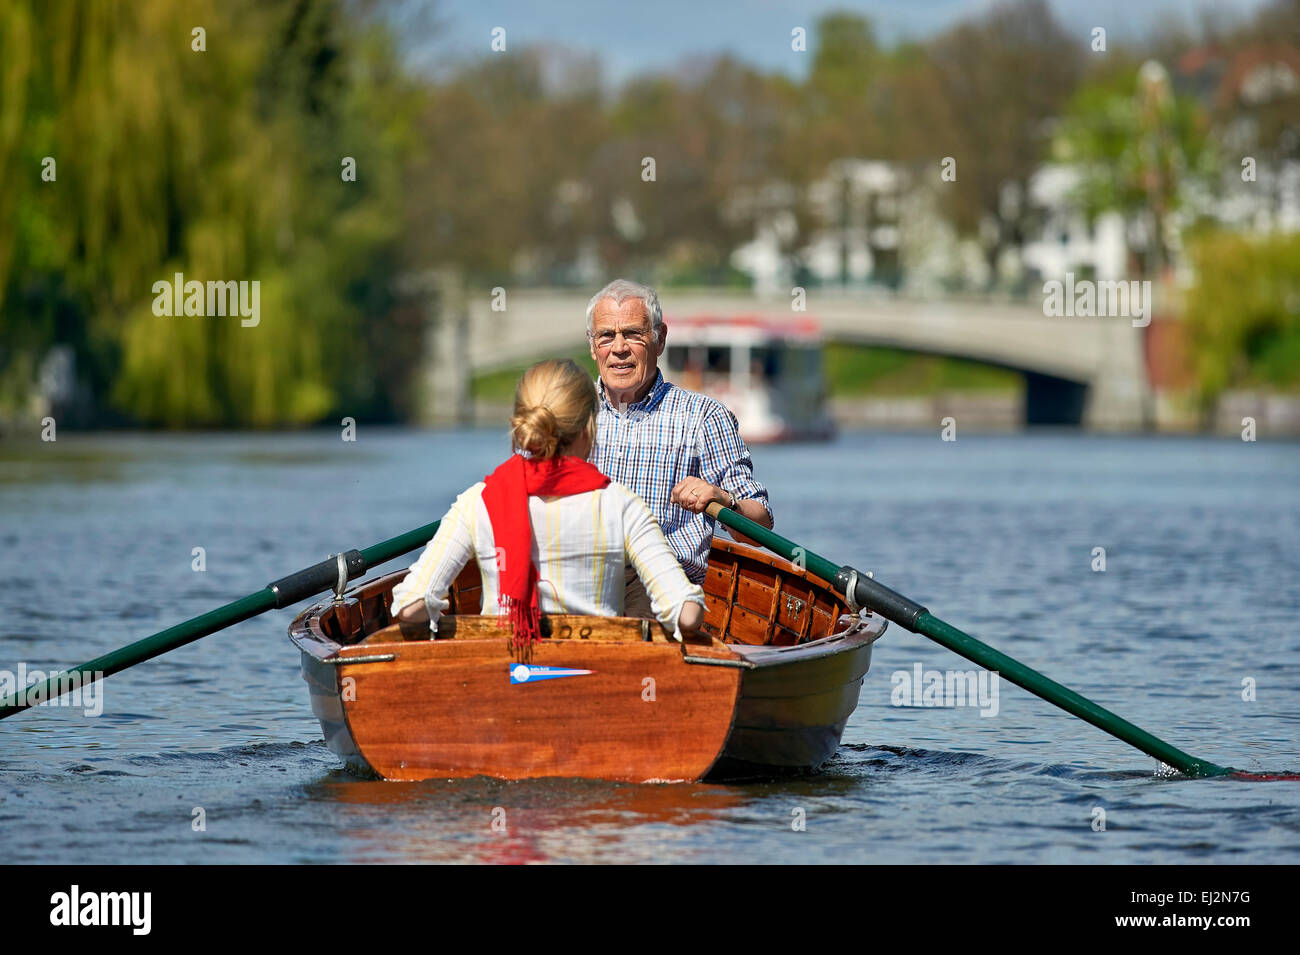 Senior and his daughter riding a rowboat - Stock Image